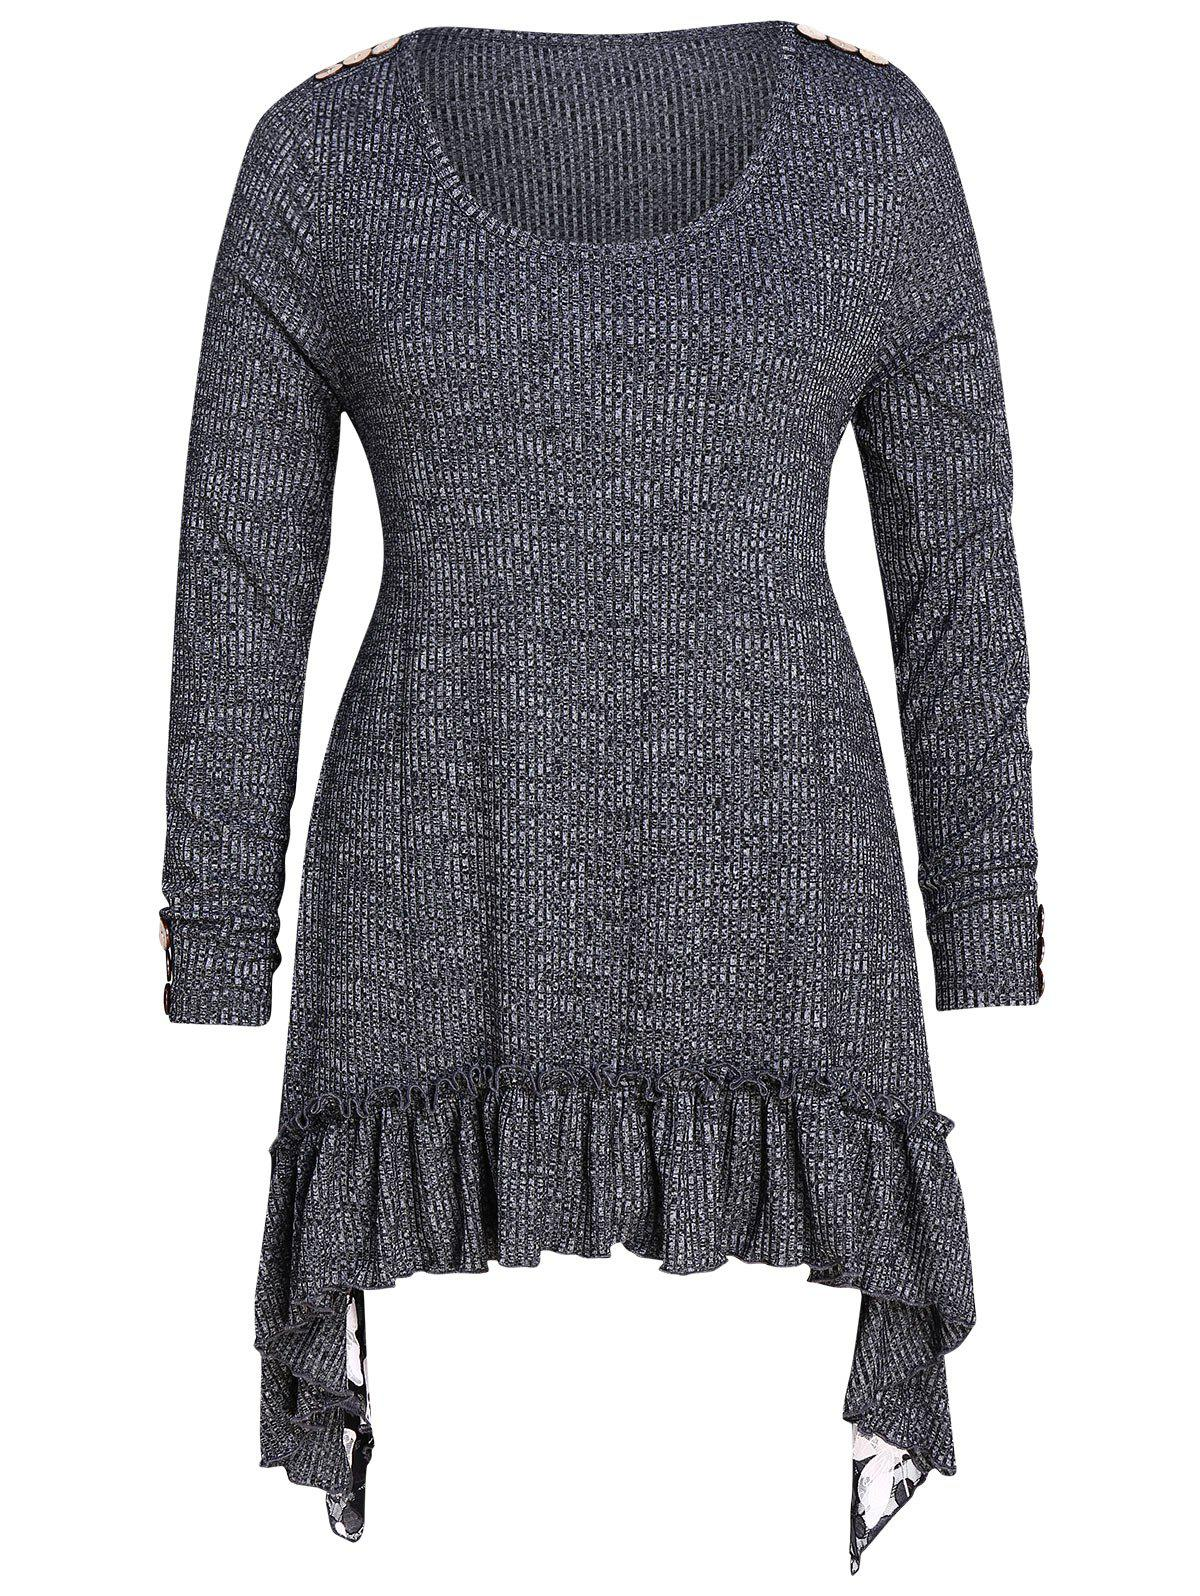 Discount Asymmetrical Flounced Space Dyed Plus Size Knitwear